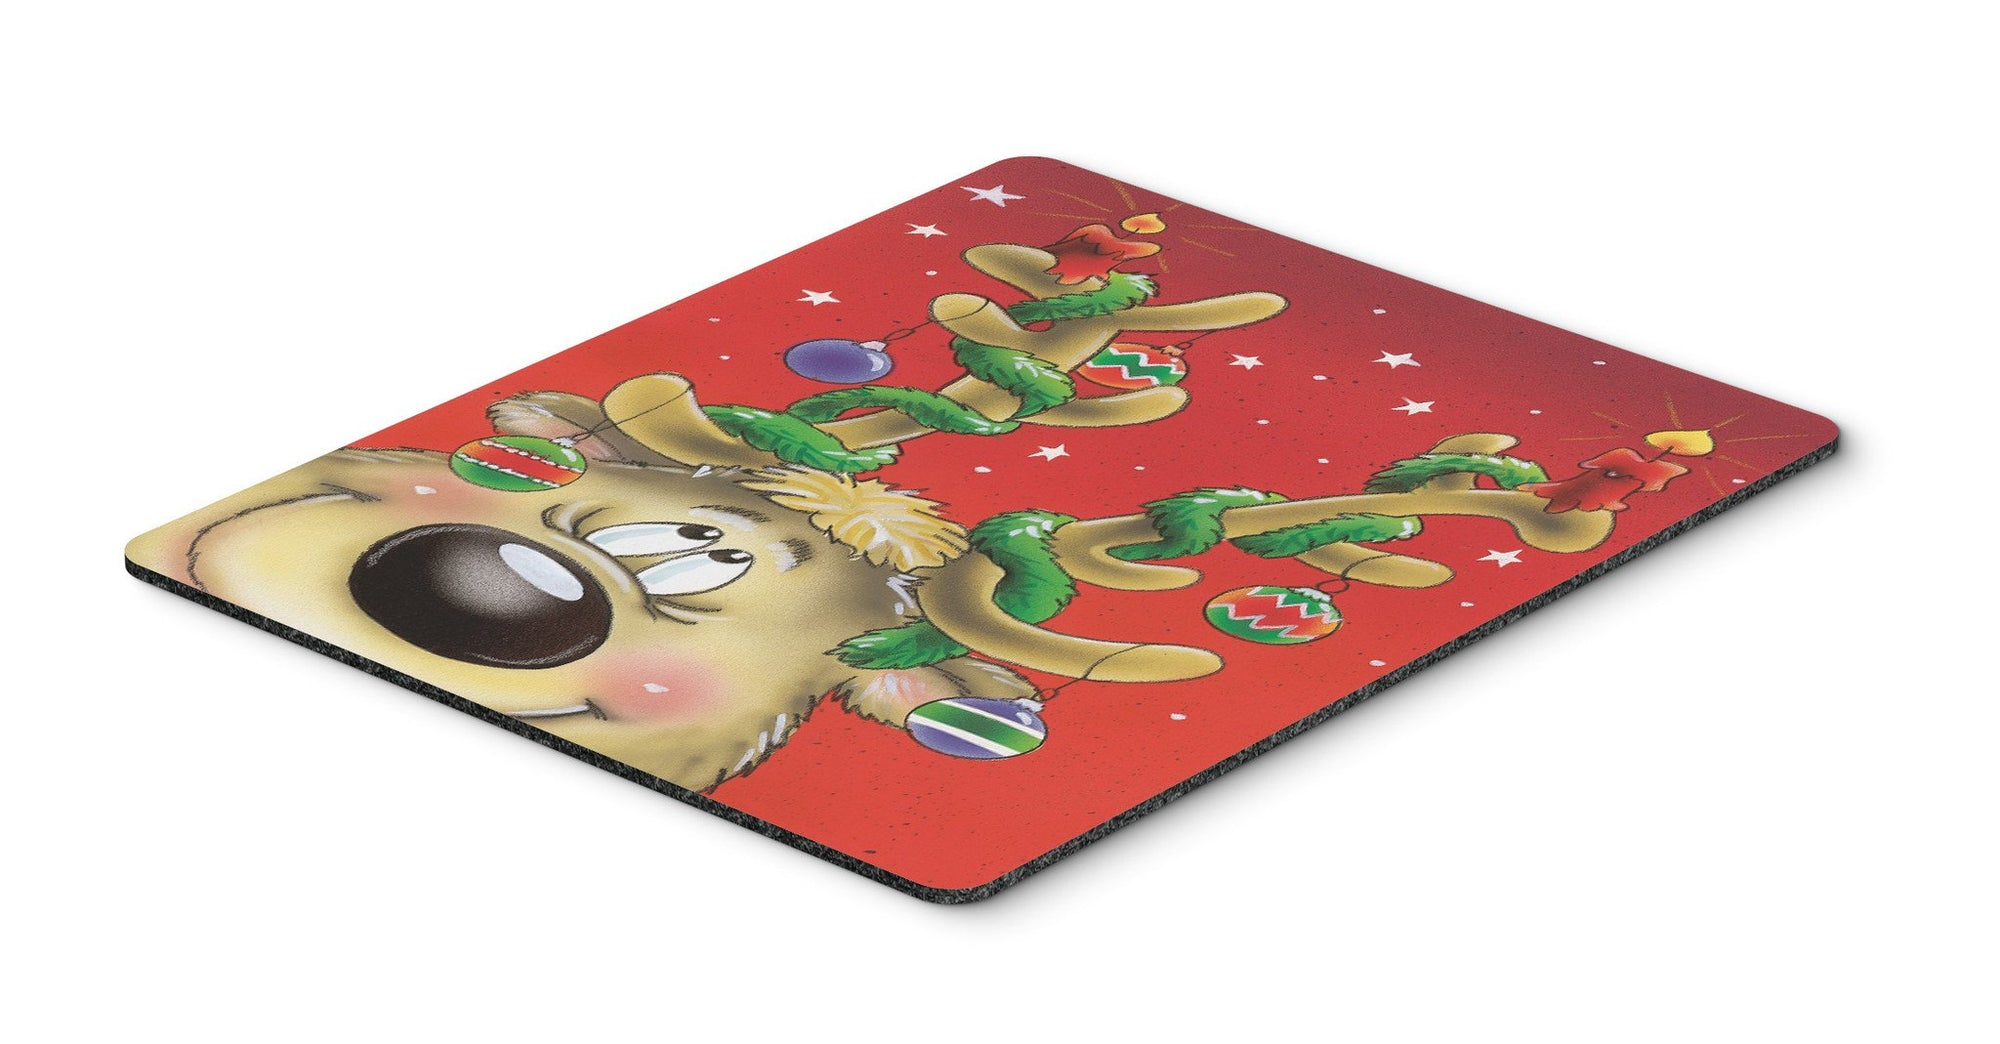 Comic Reindeer with Decorated Antlers Mouse Pad, Hot Pad or Trivet AAH7206MP by Caroline's Treasures